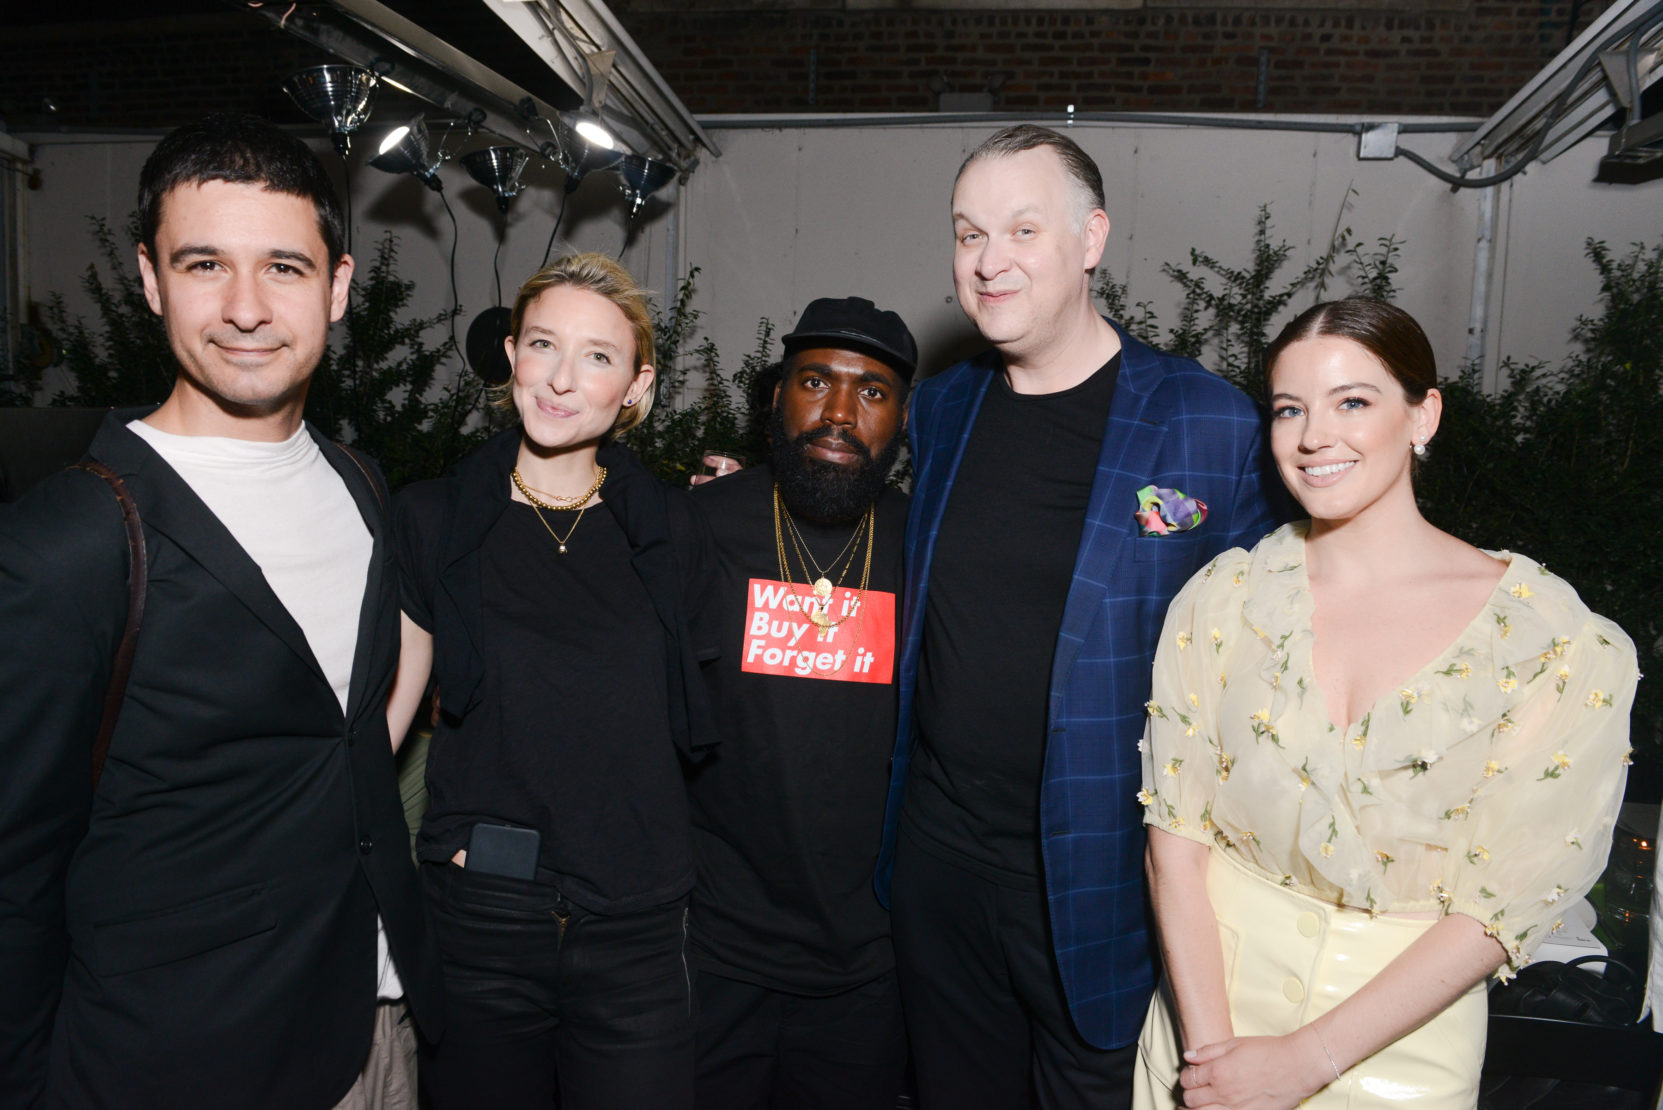 Jonah Bokaer, Lily Snyder, Derrick Adams, Eric Shiner and Laura Currie